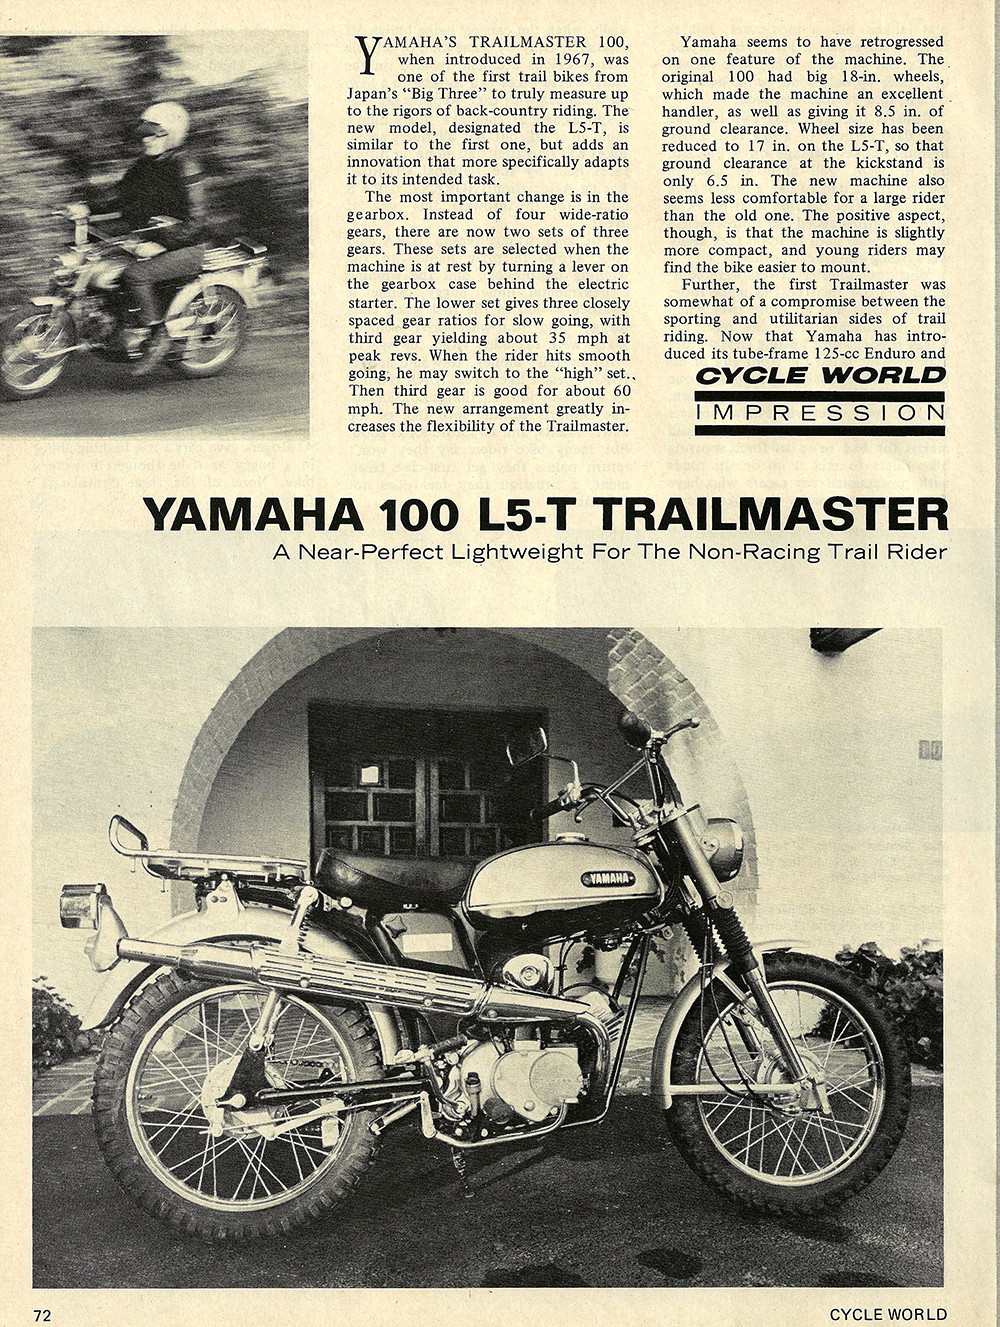 1969 Yamaha L5T Trailmaster 100 road test 01.jpg